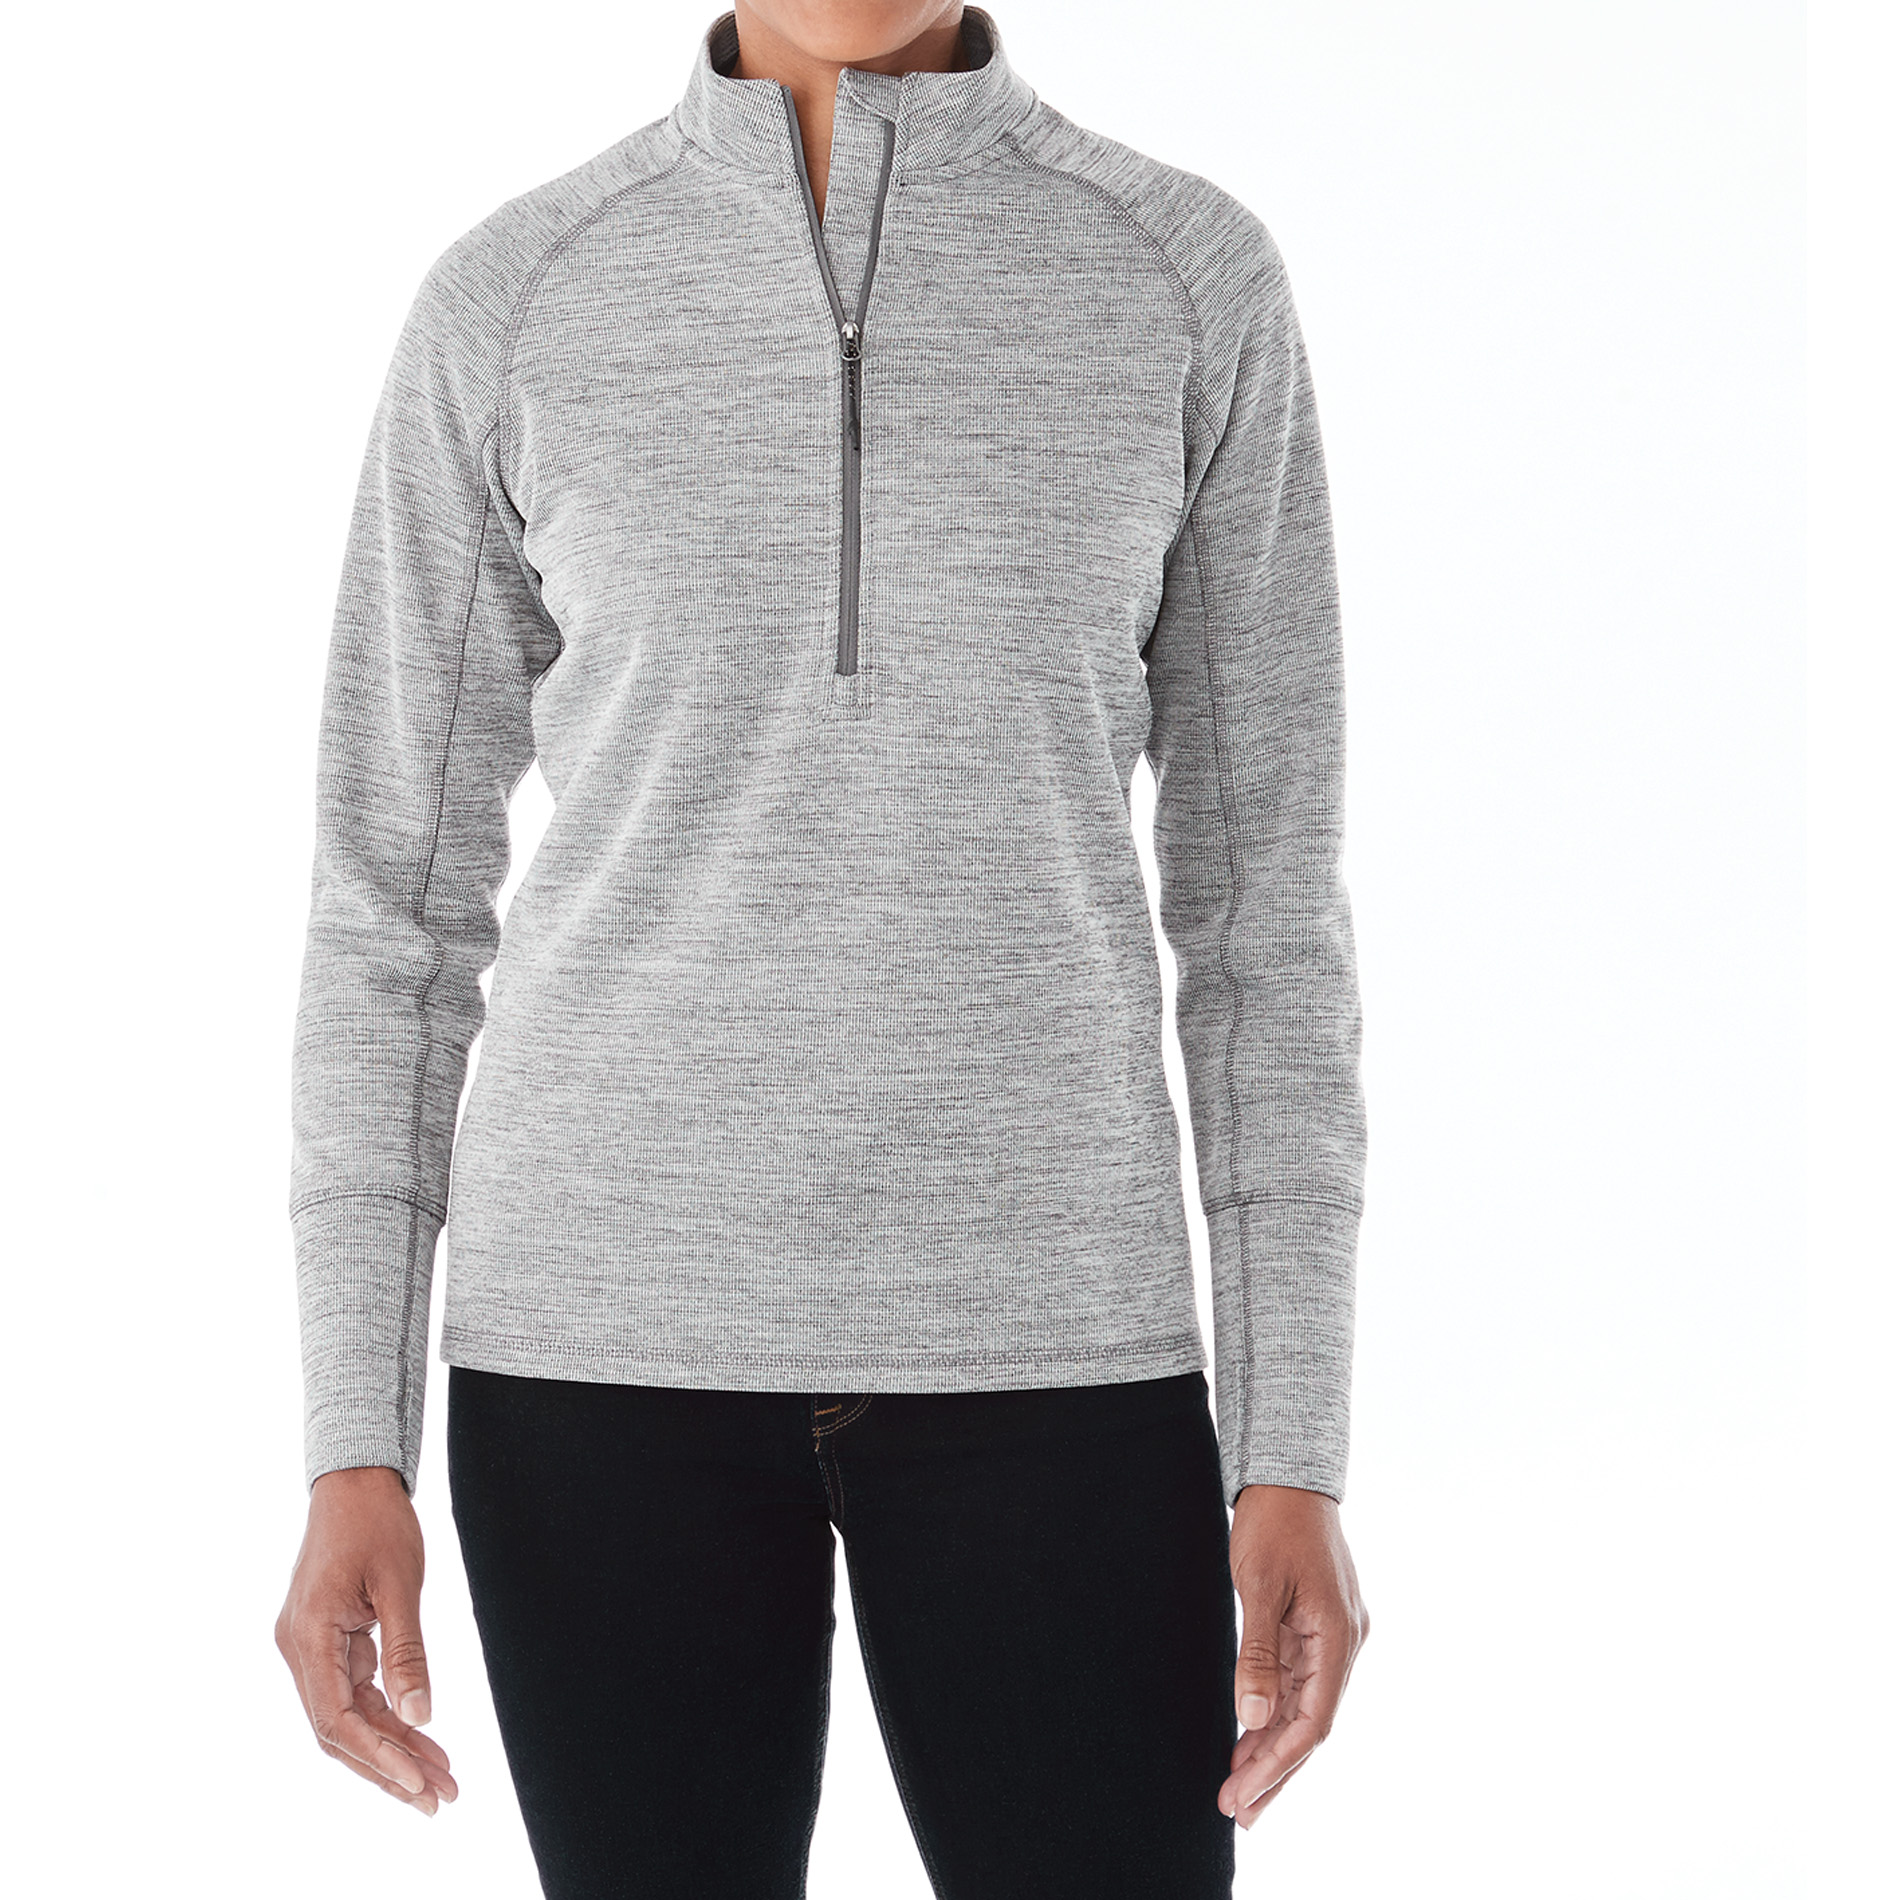 Elevate TM98305 - Women's CRANE Knit Half Zip